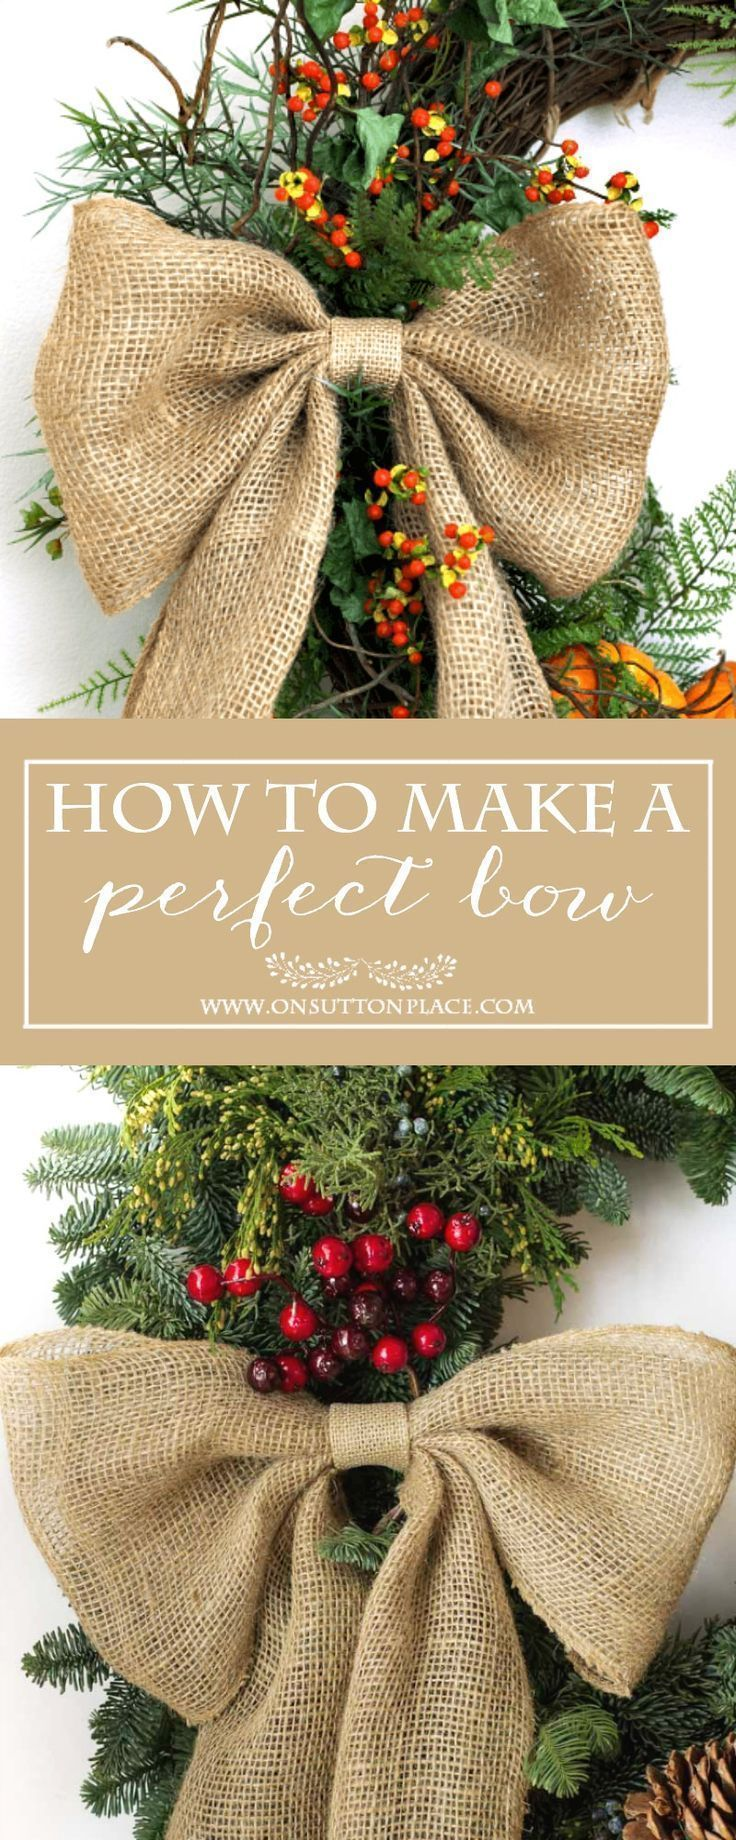 How To Make A Bow for a Wreath Christmas wreaths to make